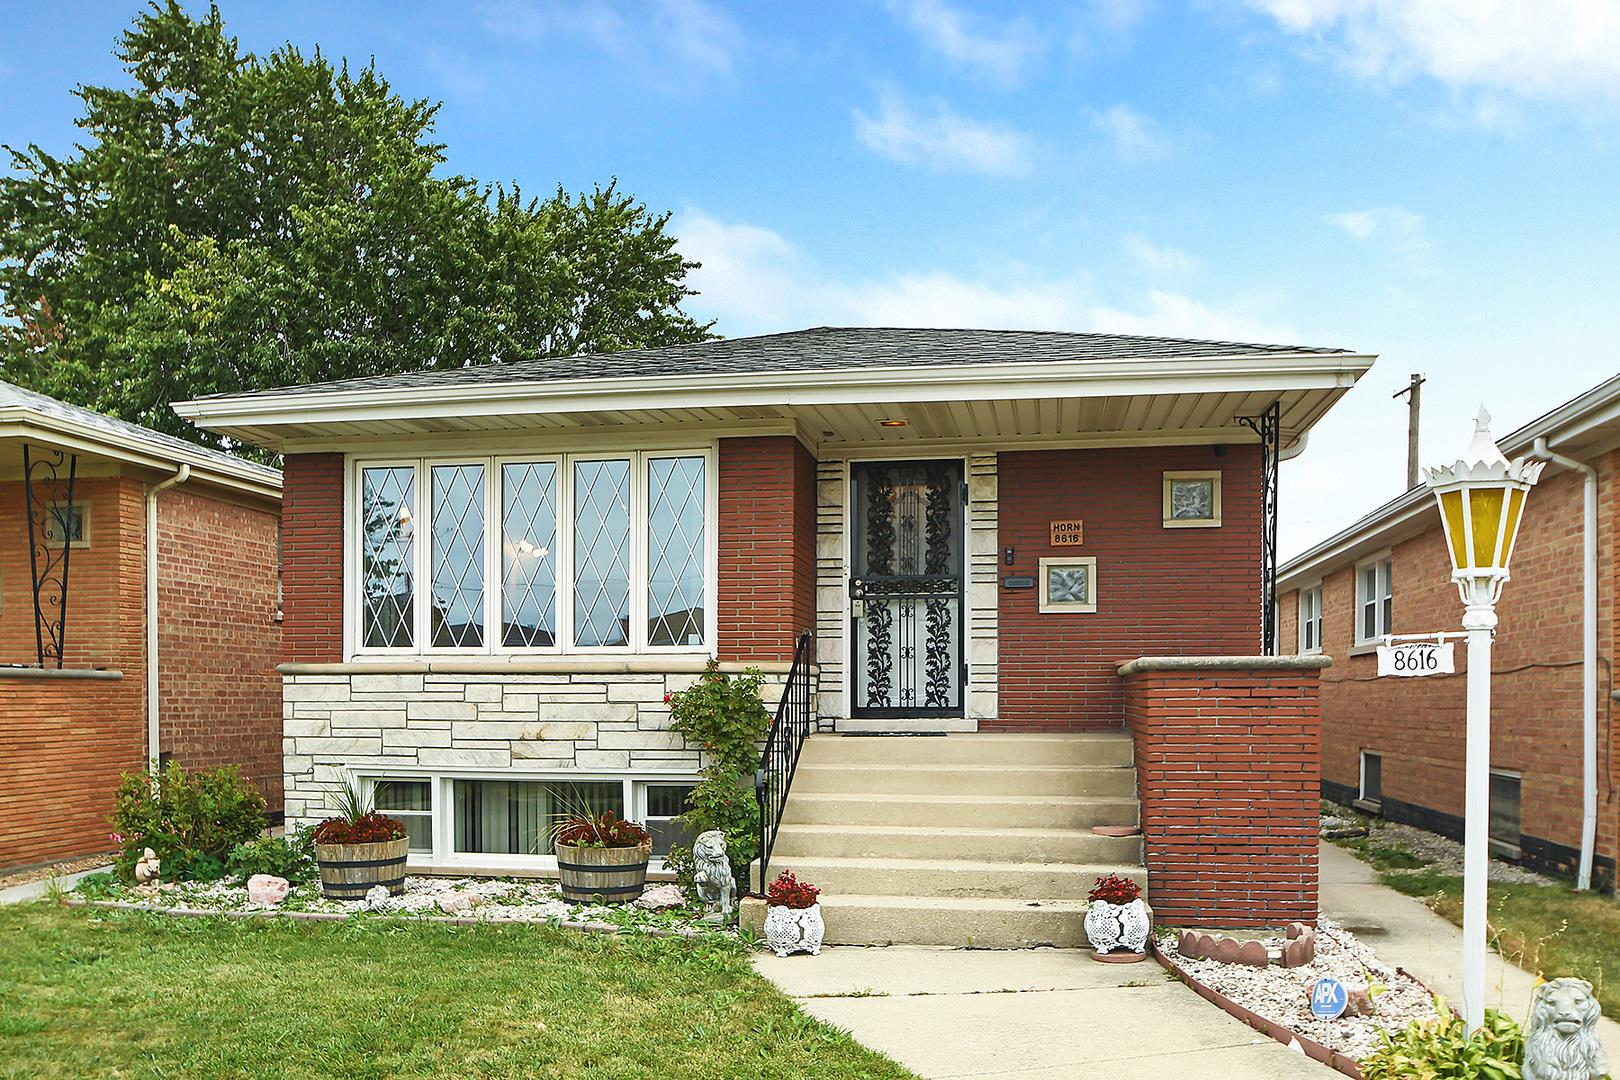 8616 S Keating Avenue, Chicago, IL 60652 - #: 10840125